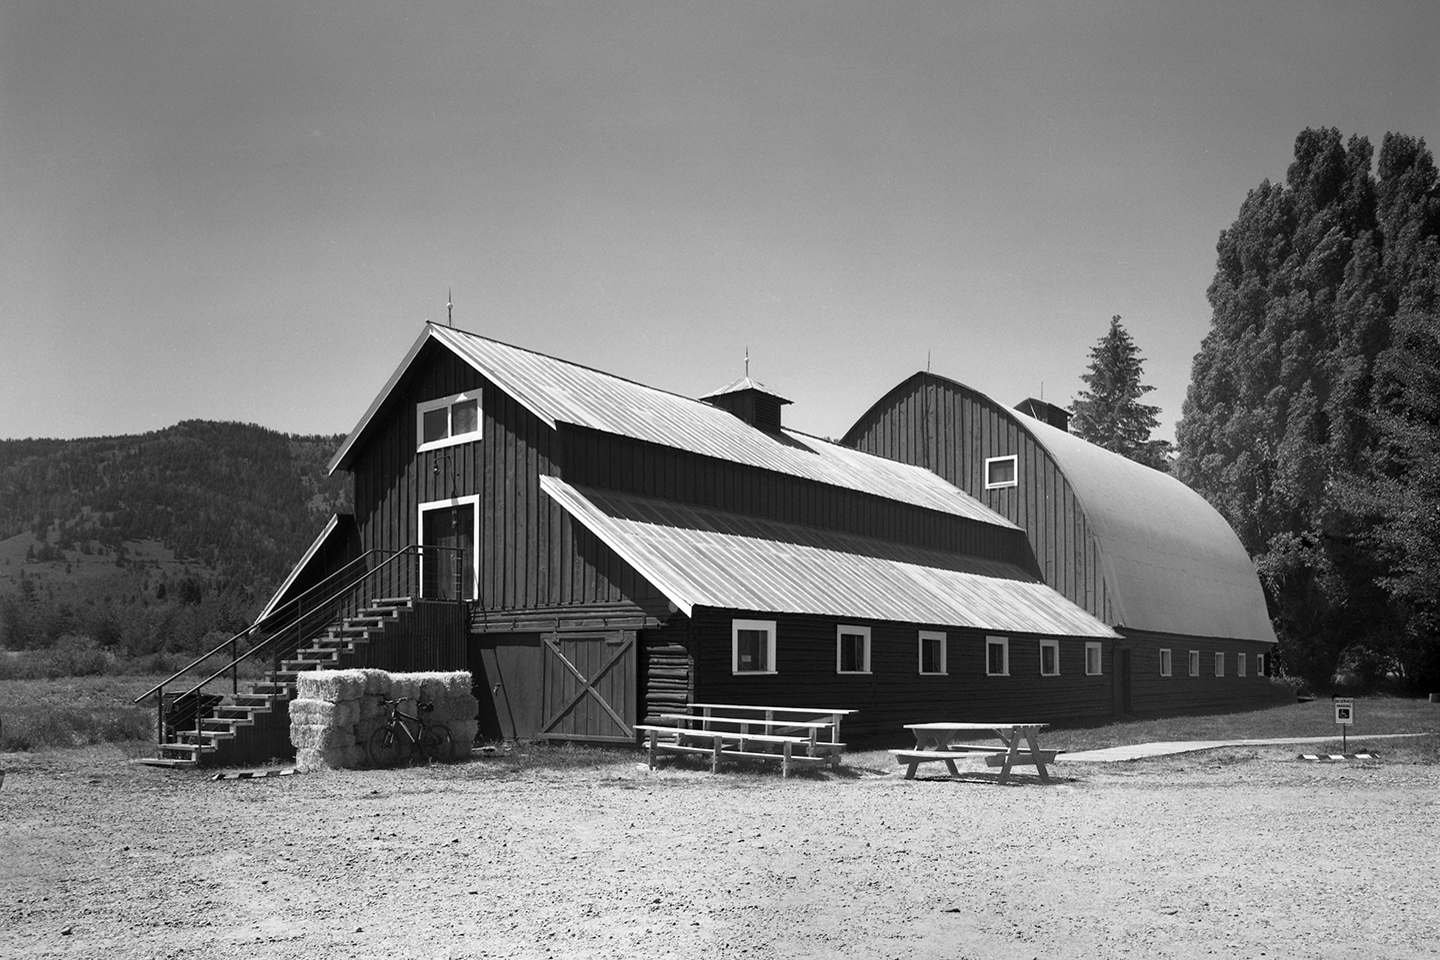 The two adjacent barns